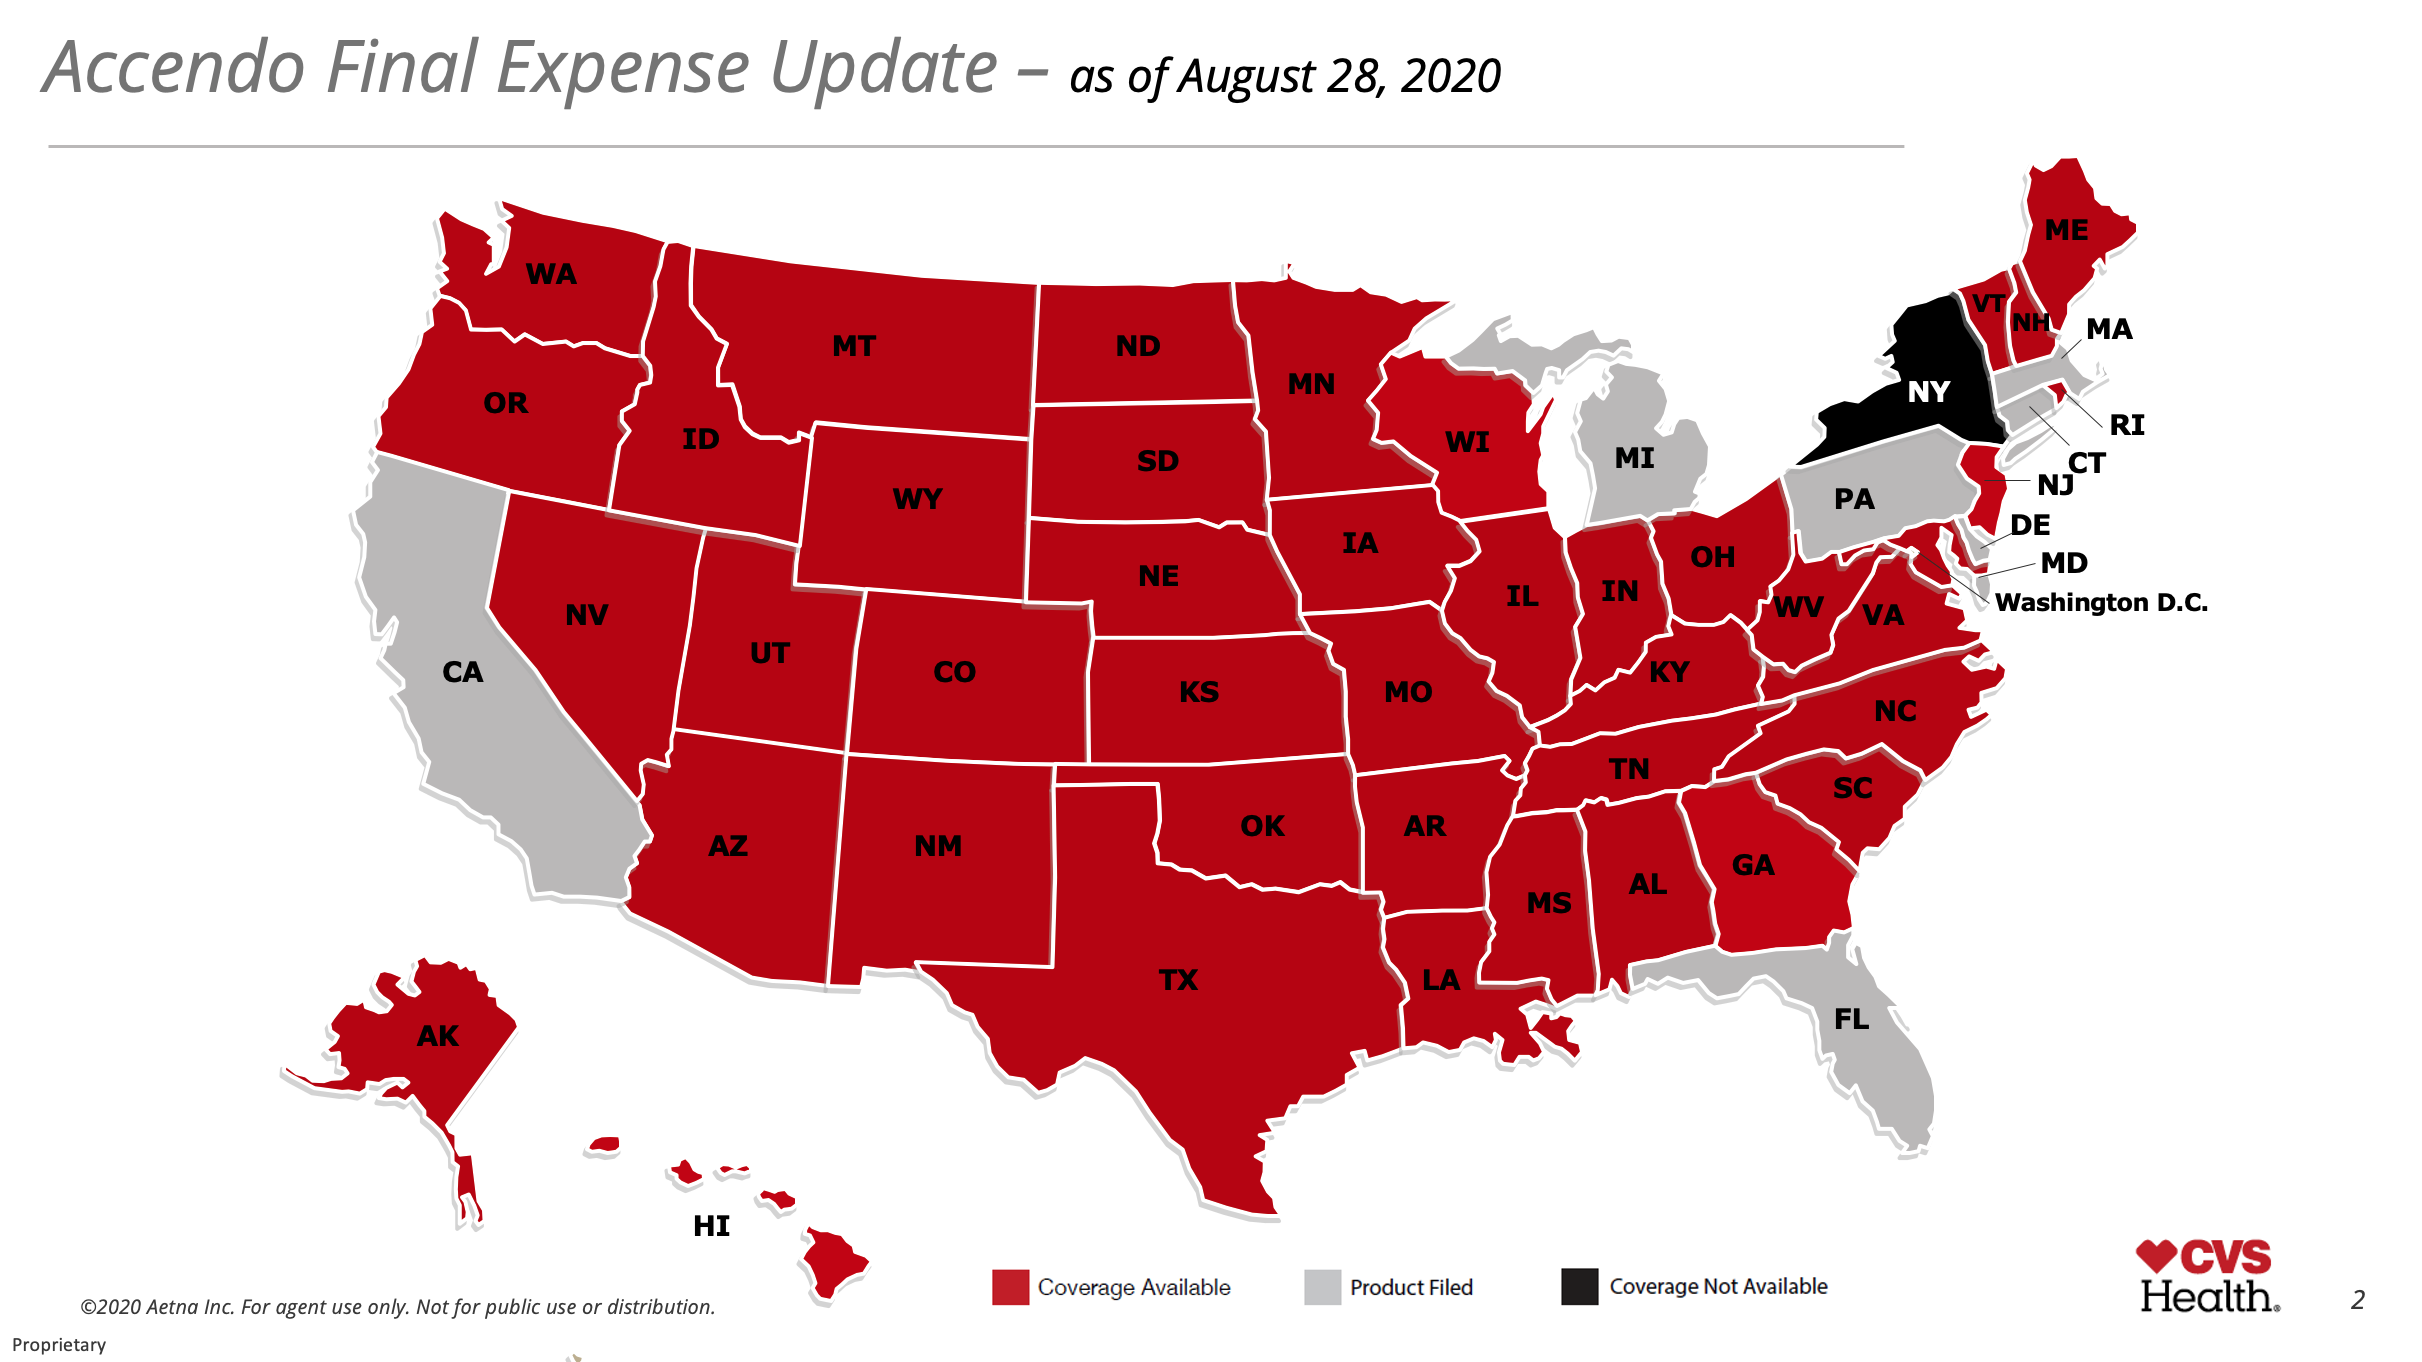 Accendo-Final-Expense-State-Availability-2020